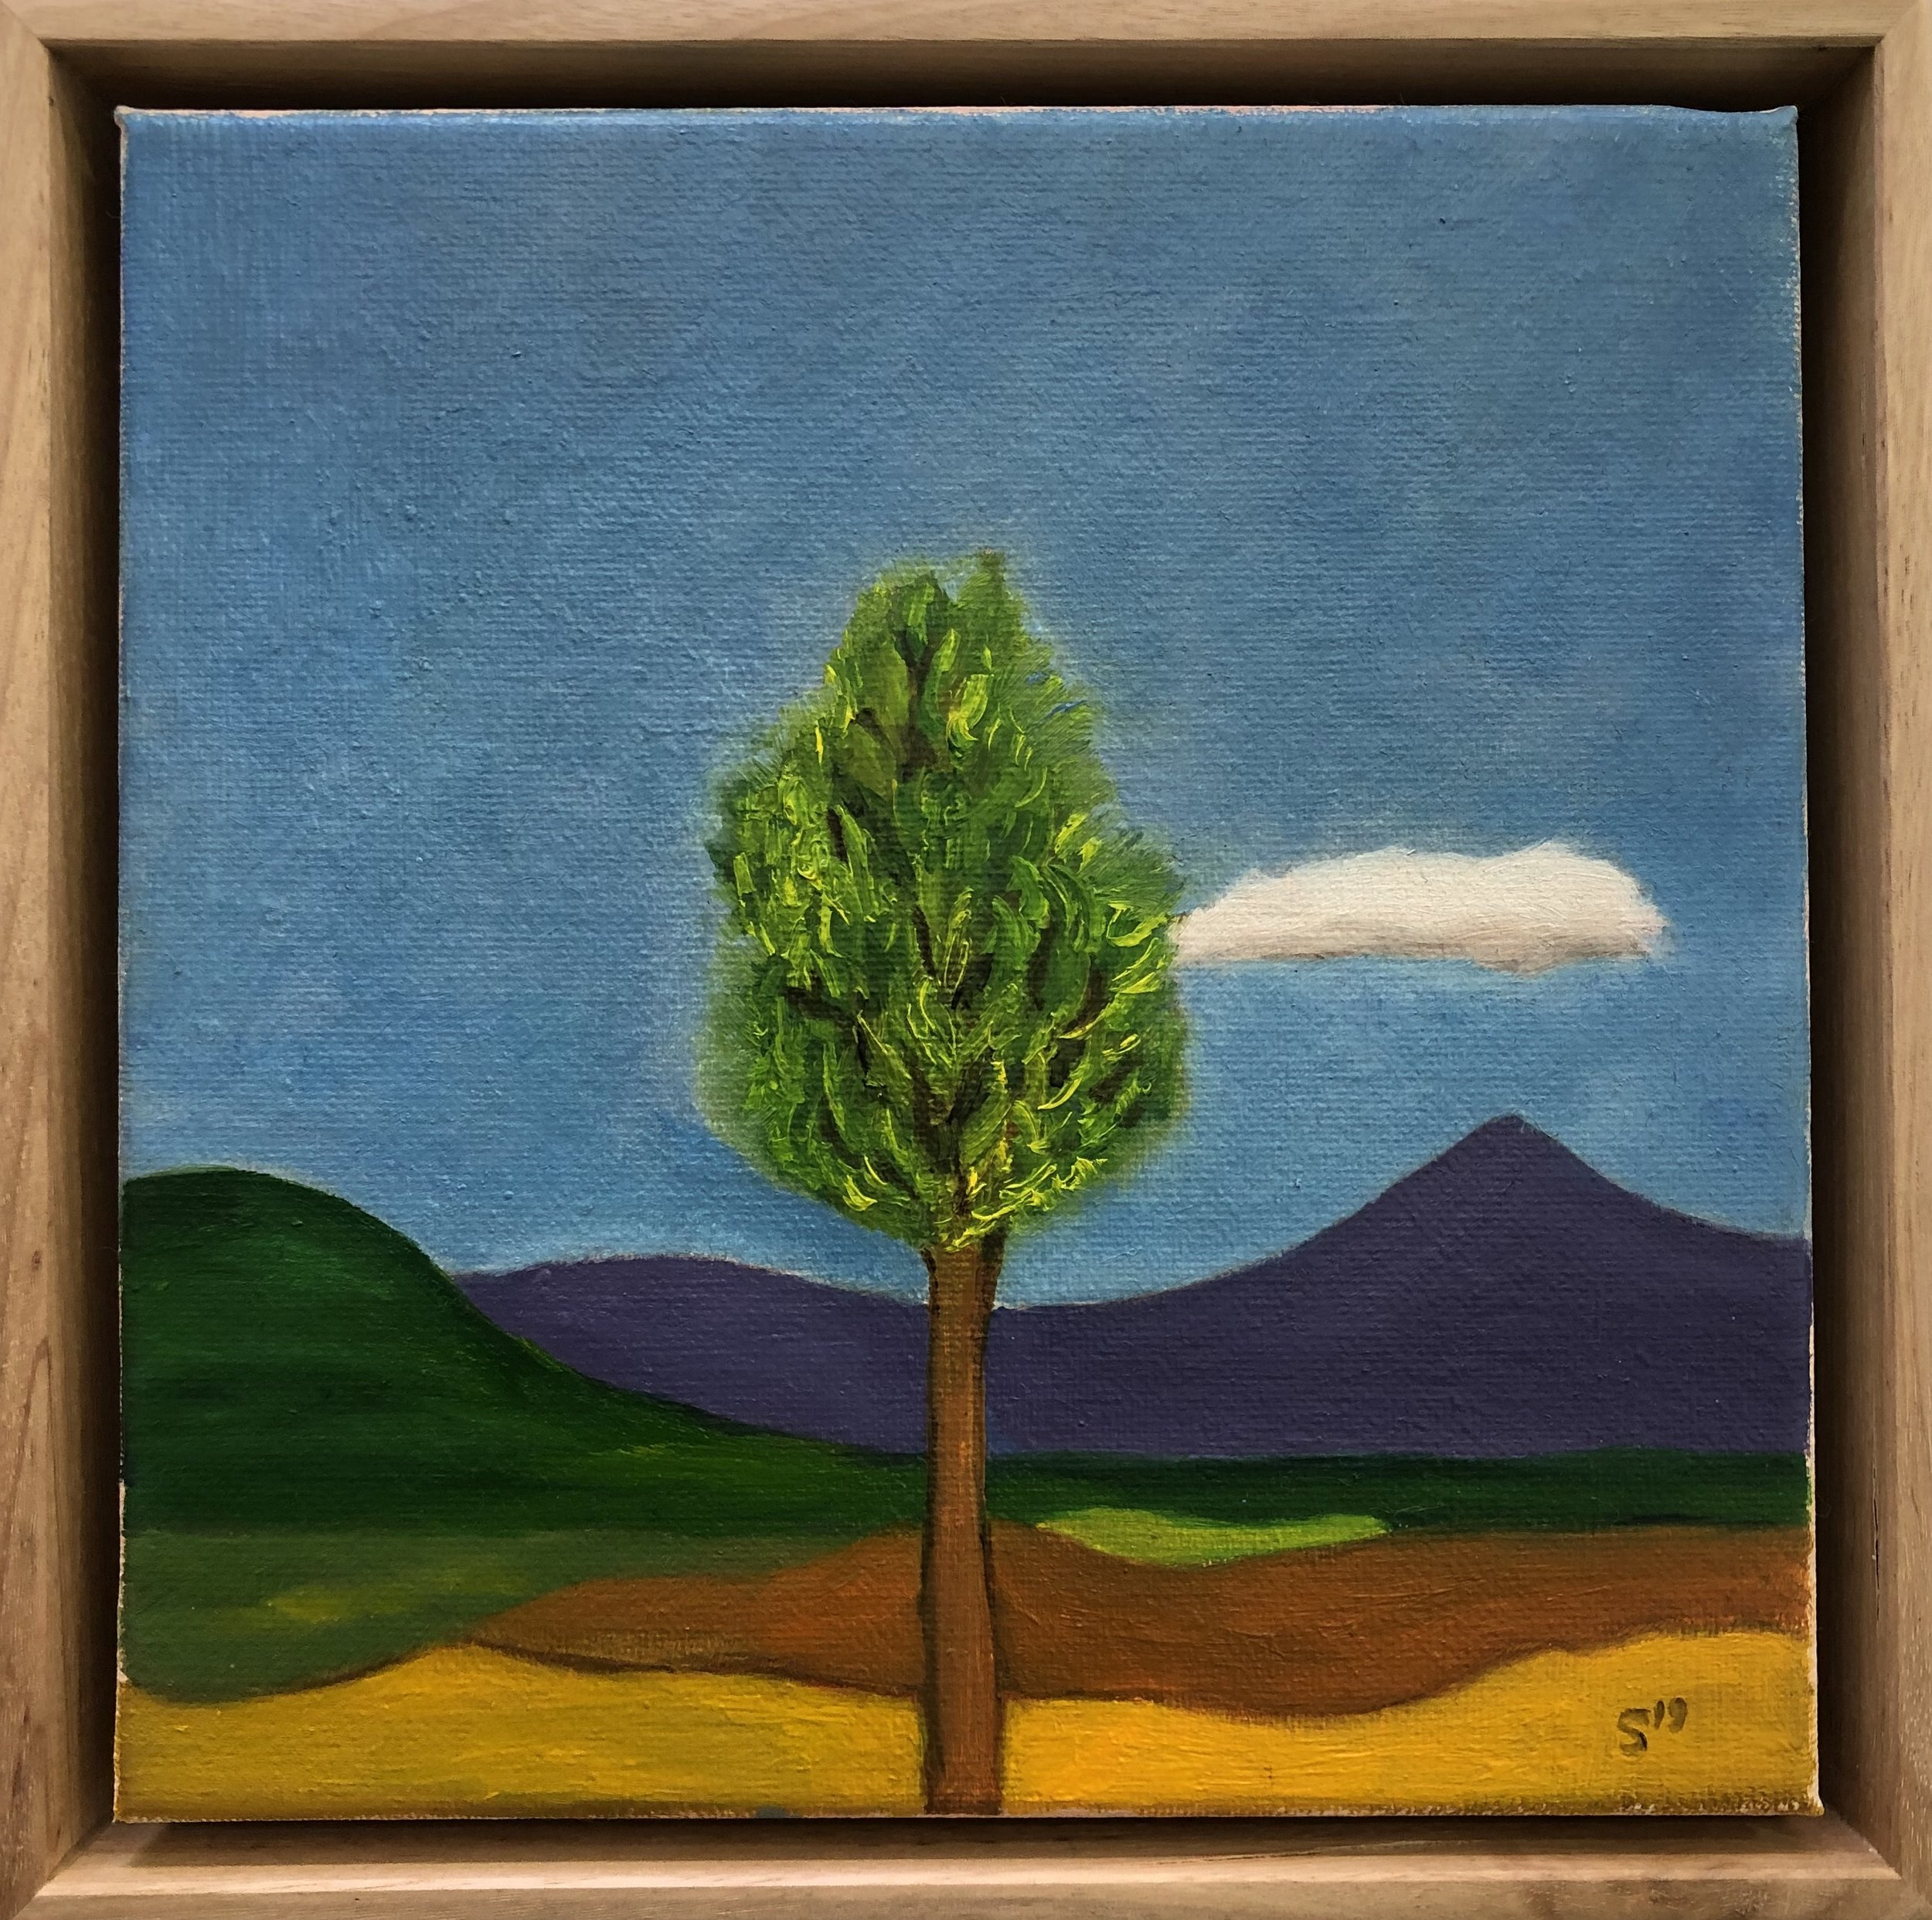 6. Malcolm Sands Bylong Valley View 2019 oil on canvas 23 x 23cm framed $250.00